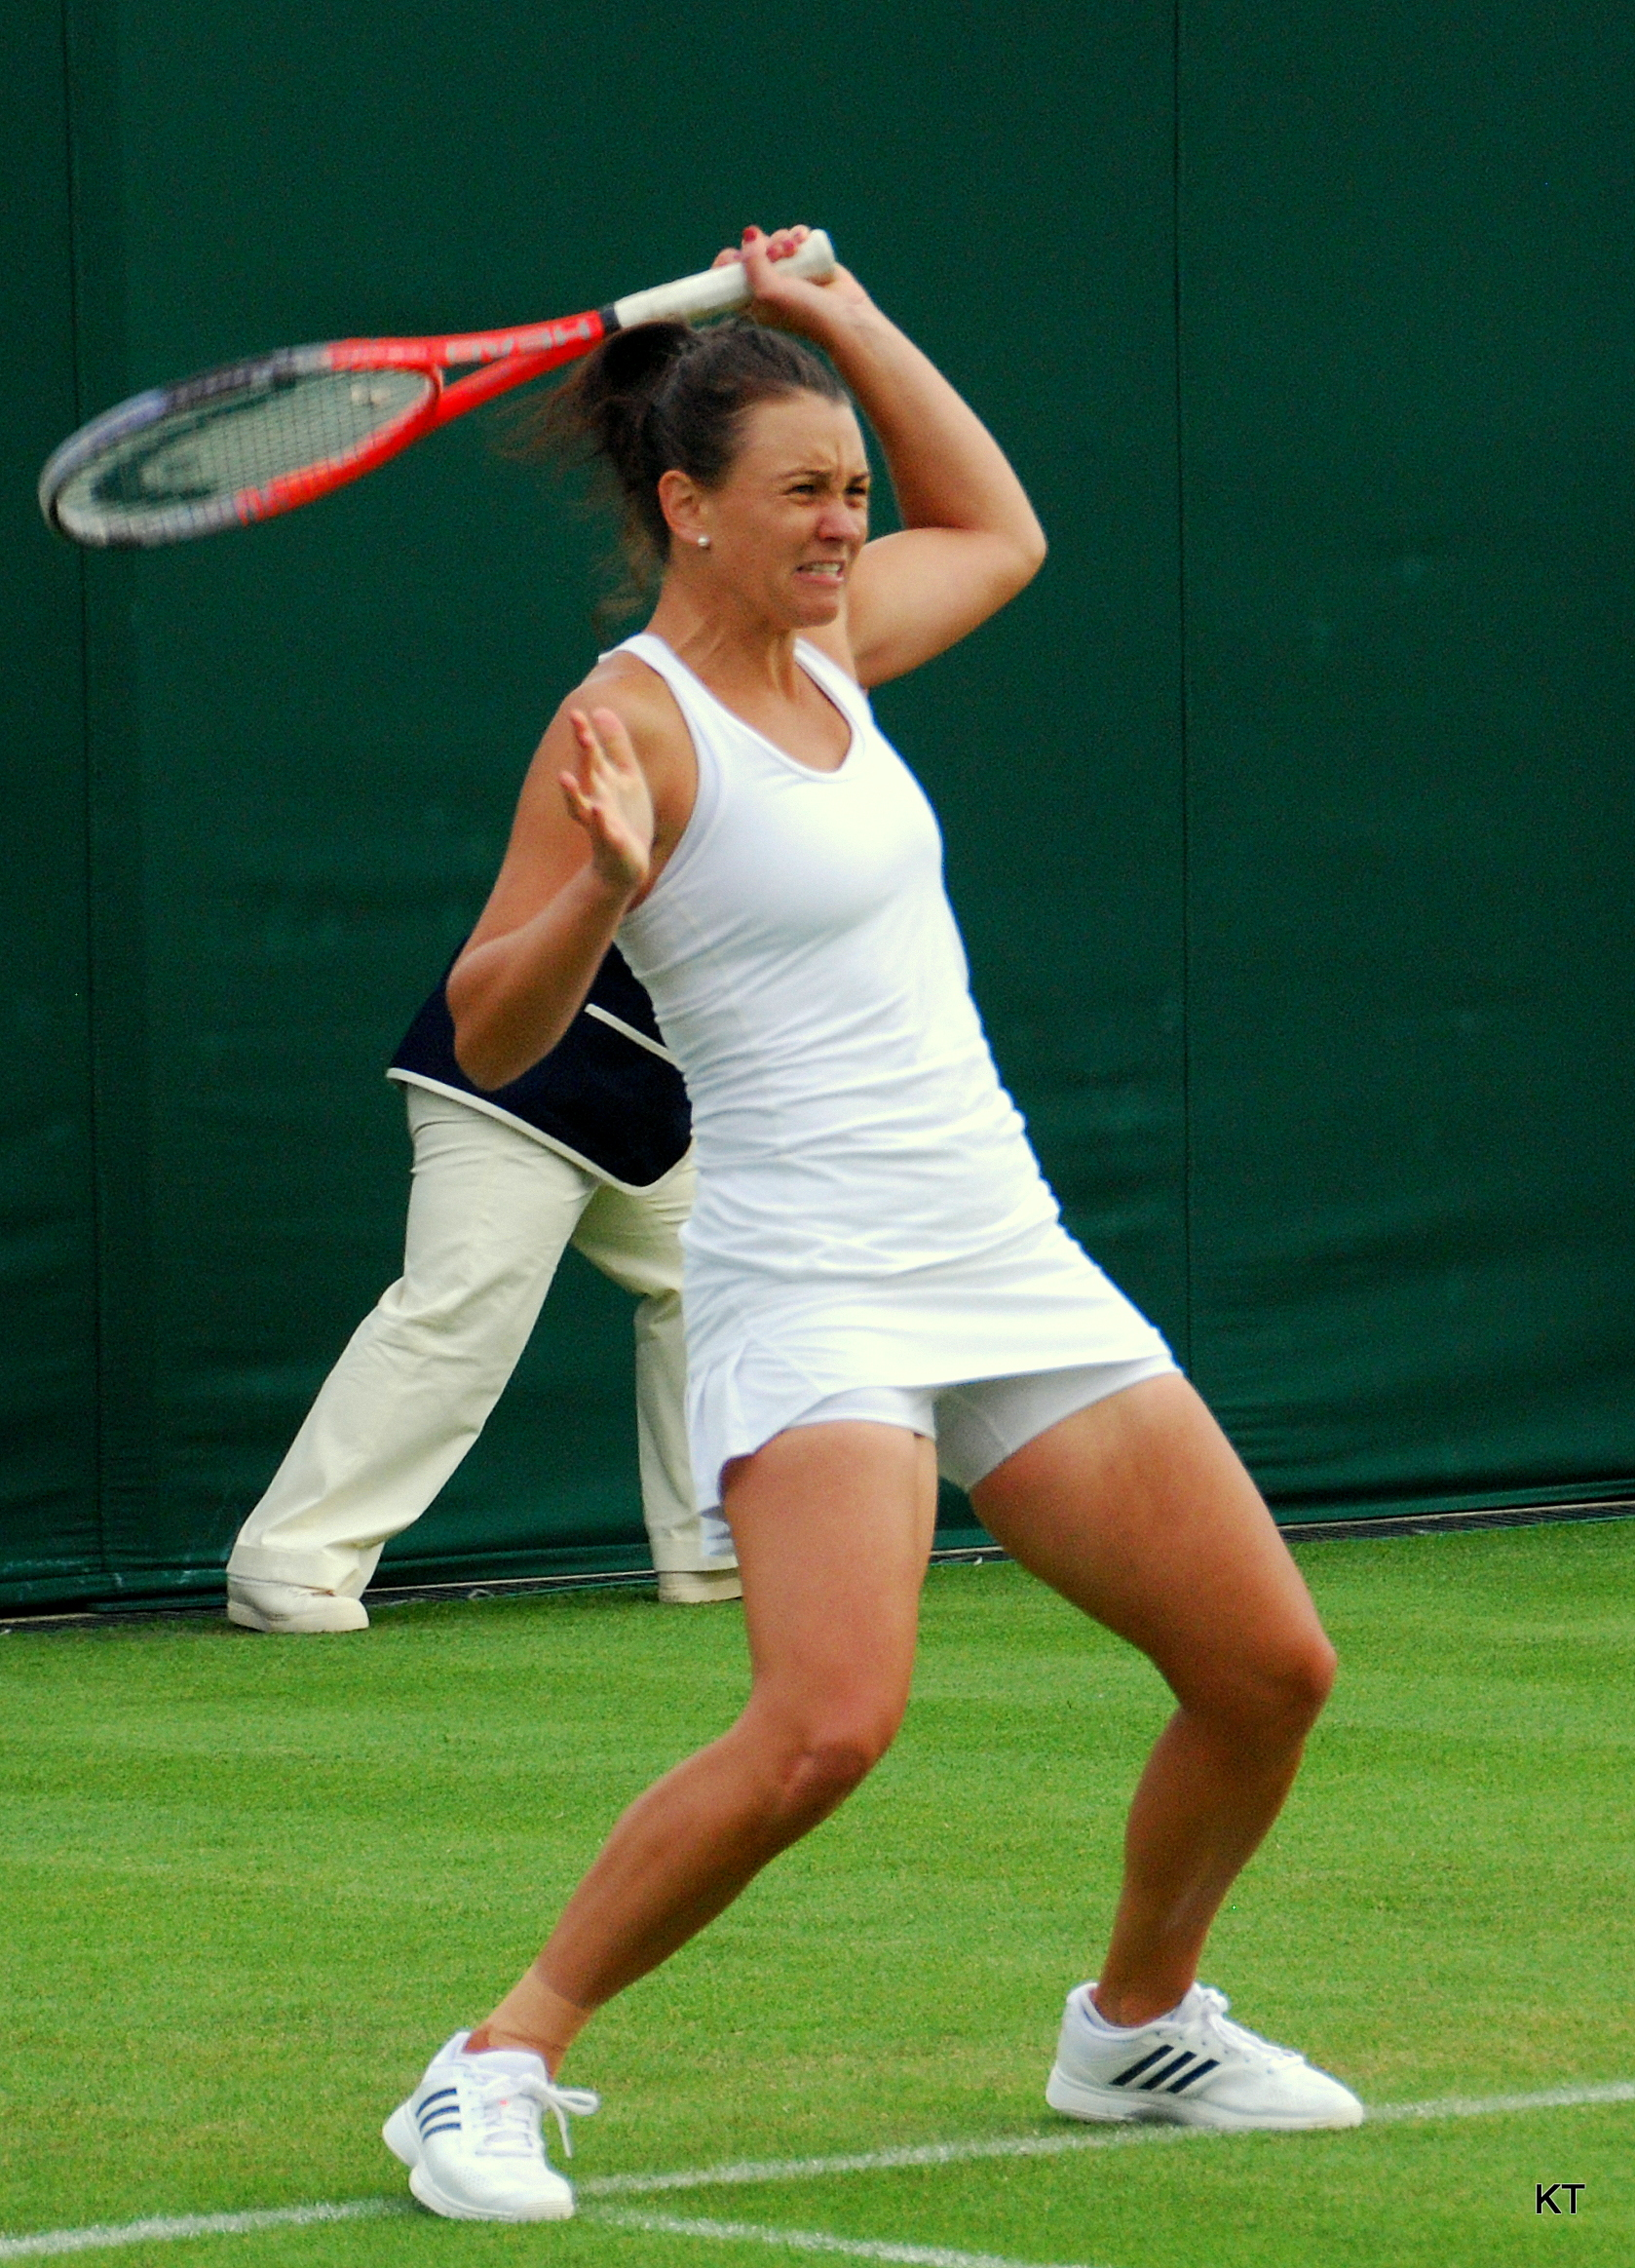 wimbledon lesbian personals Find meetups in london, england about wimbledon and meet people in your local community who share your interests.